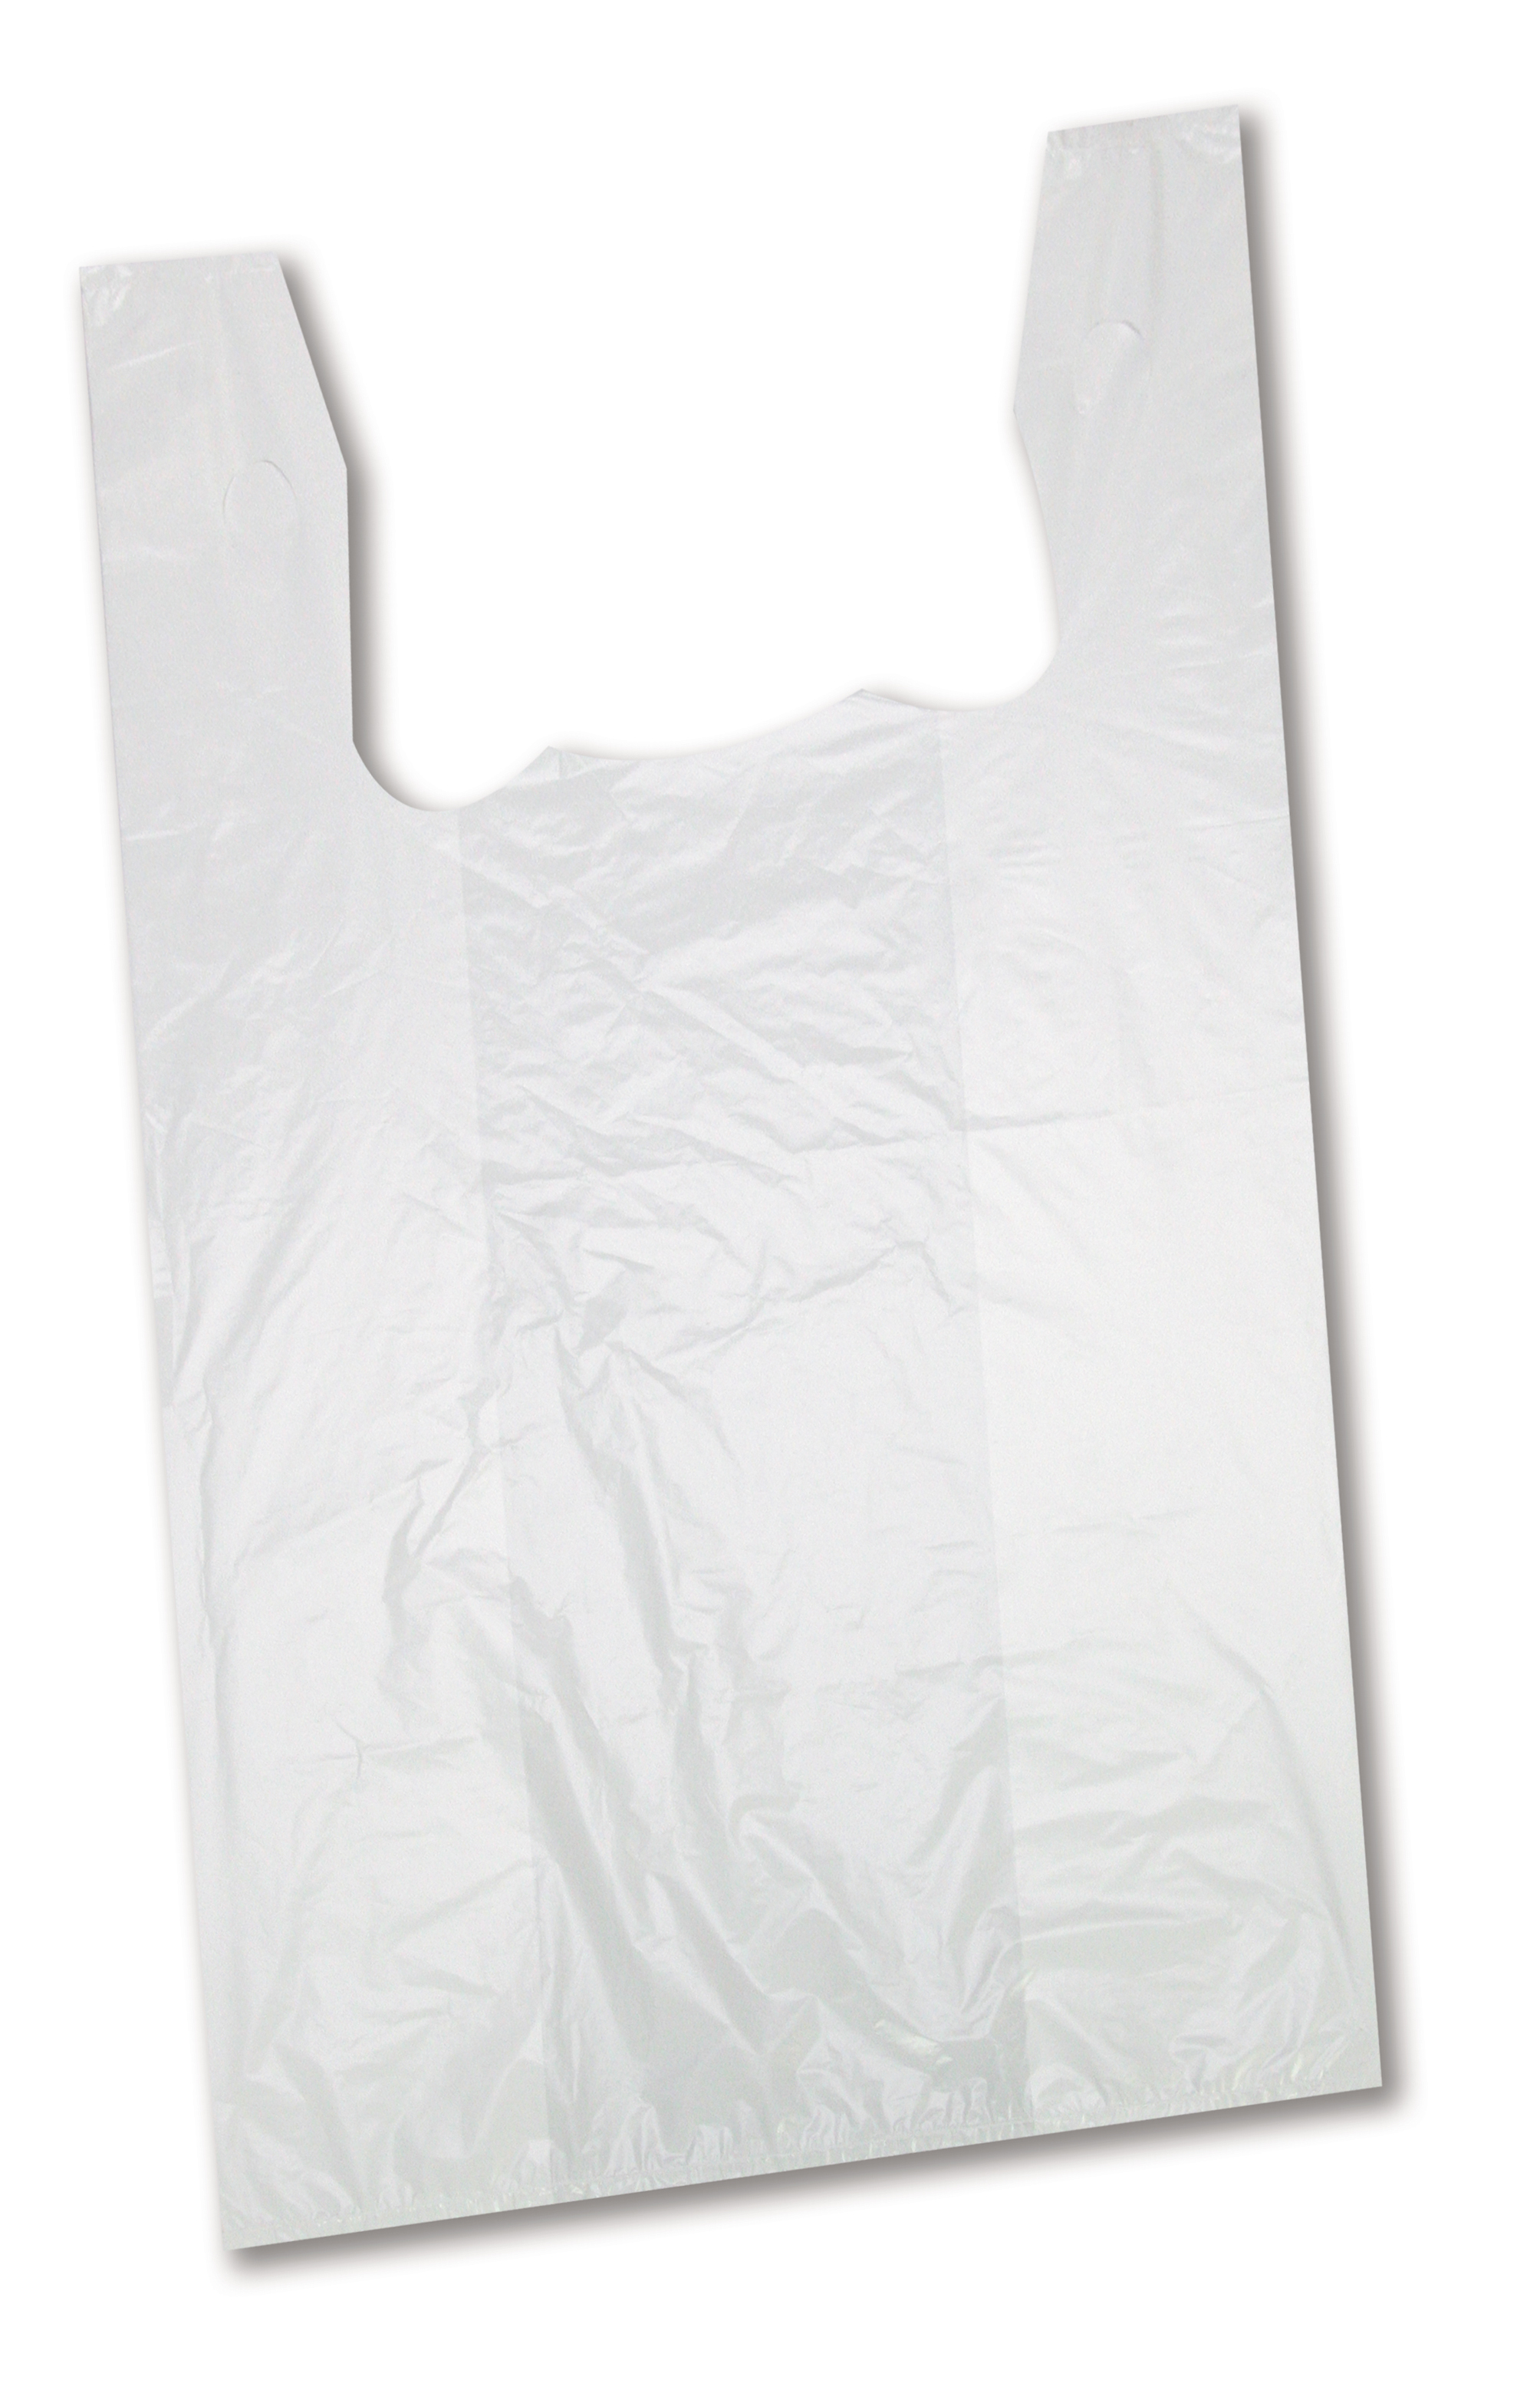 Wholesale Plastic Shopping Bags | T-Shirt Shopping Bags | 1,000 ...